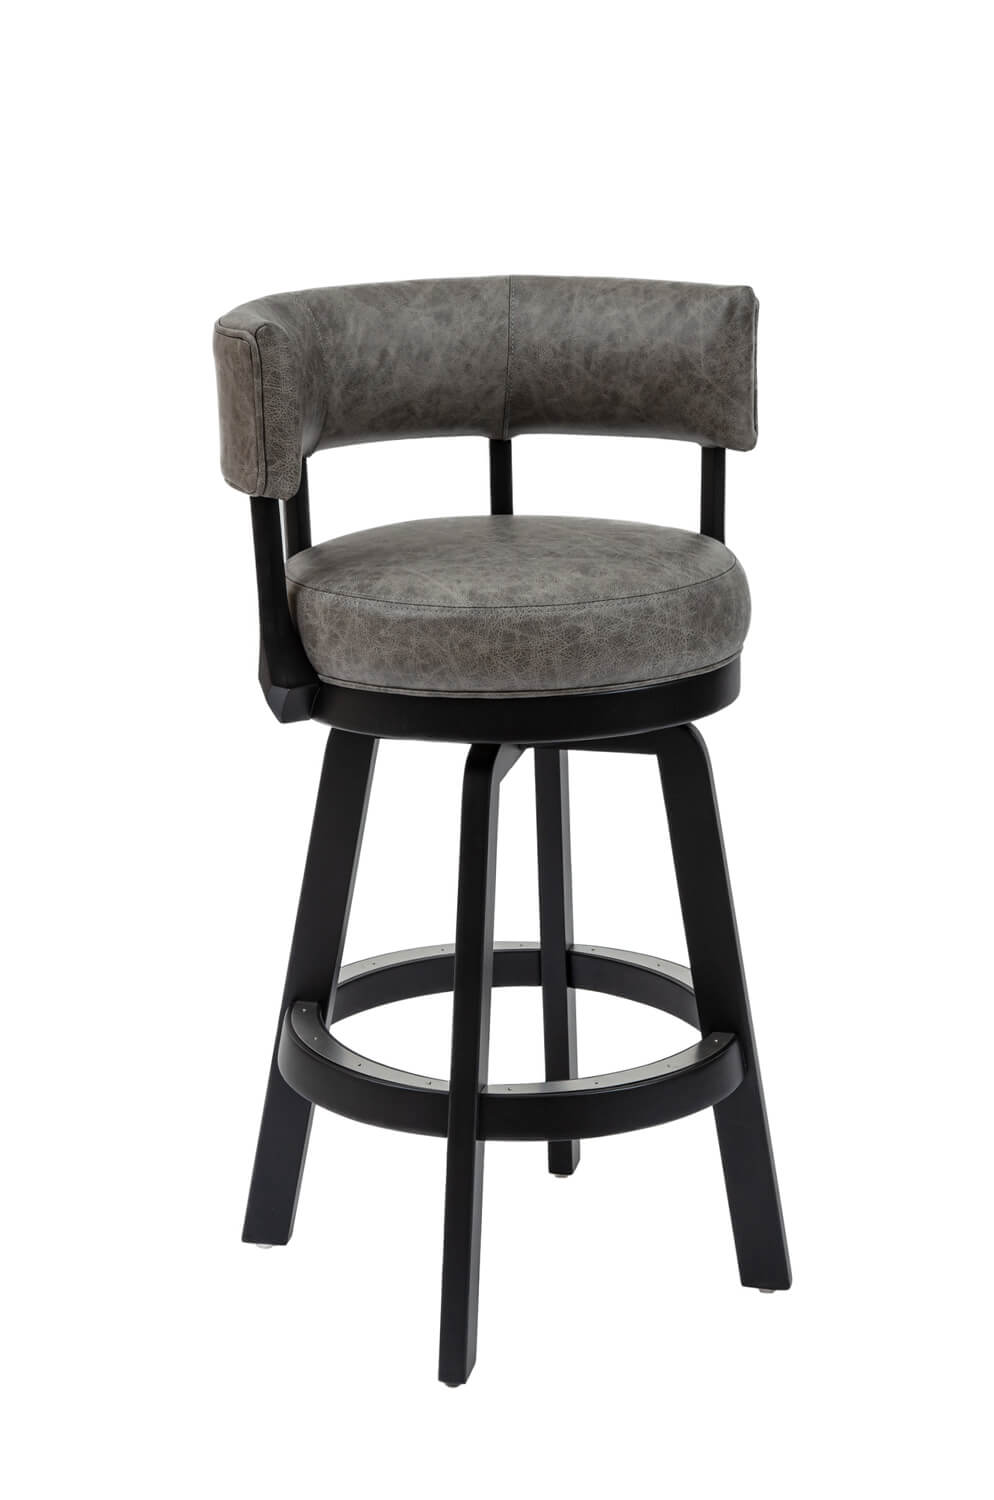 Darafeev's Ace Wooden Swivel Stool with Low Back